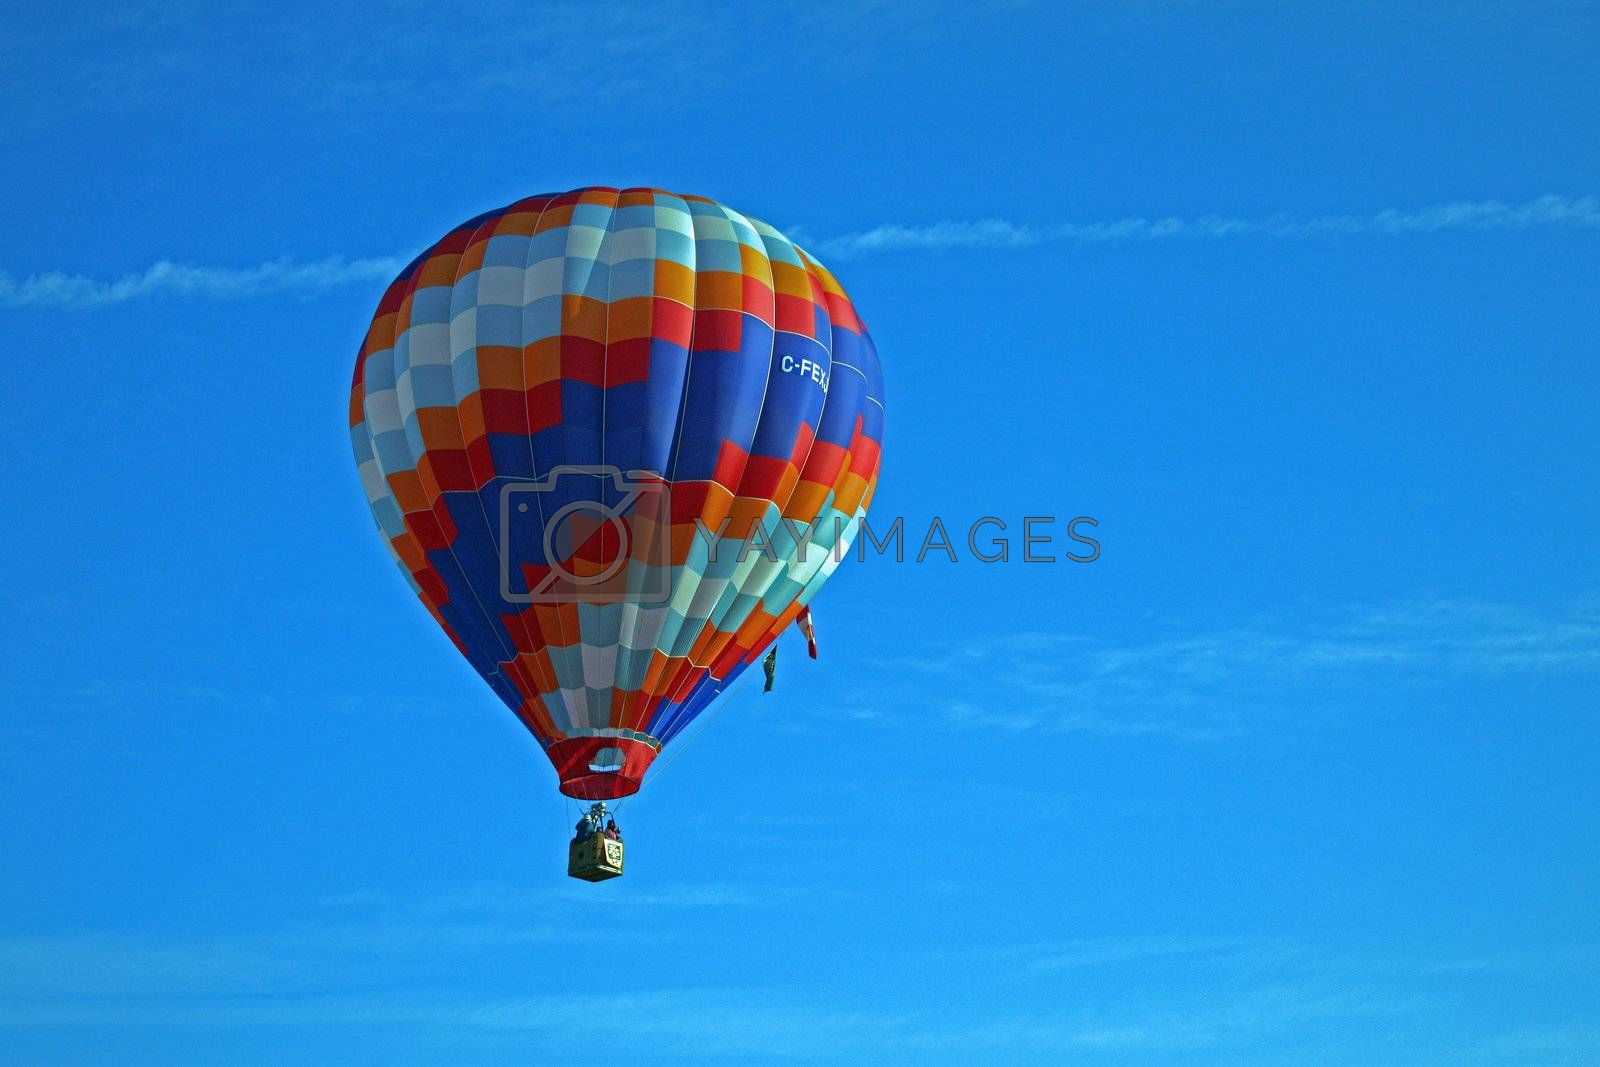 Hot air balloon on blue background with red blue and white highlights.